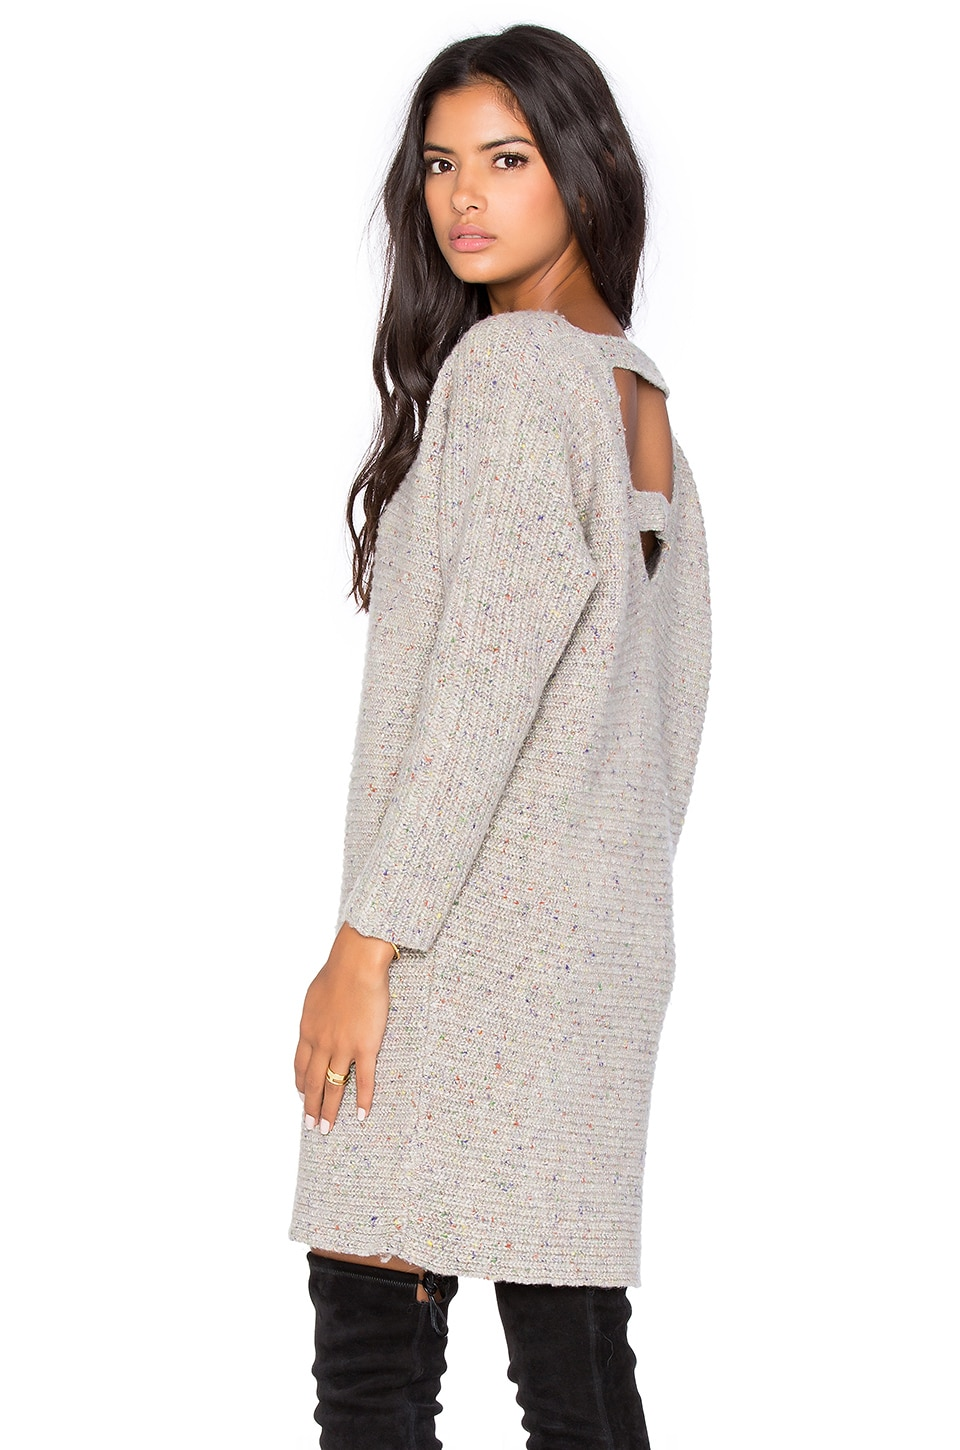 Rebecca Minkoff Bass Open Back Sweater Dress in Cream